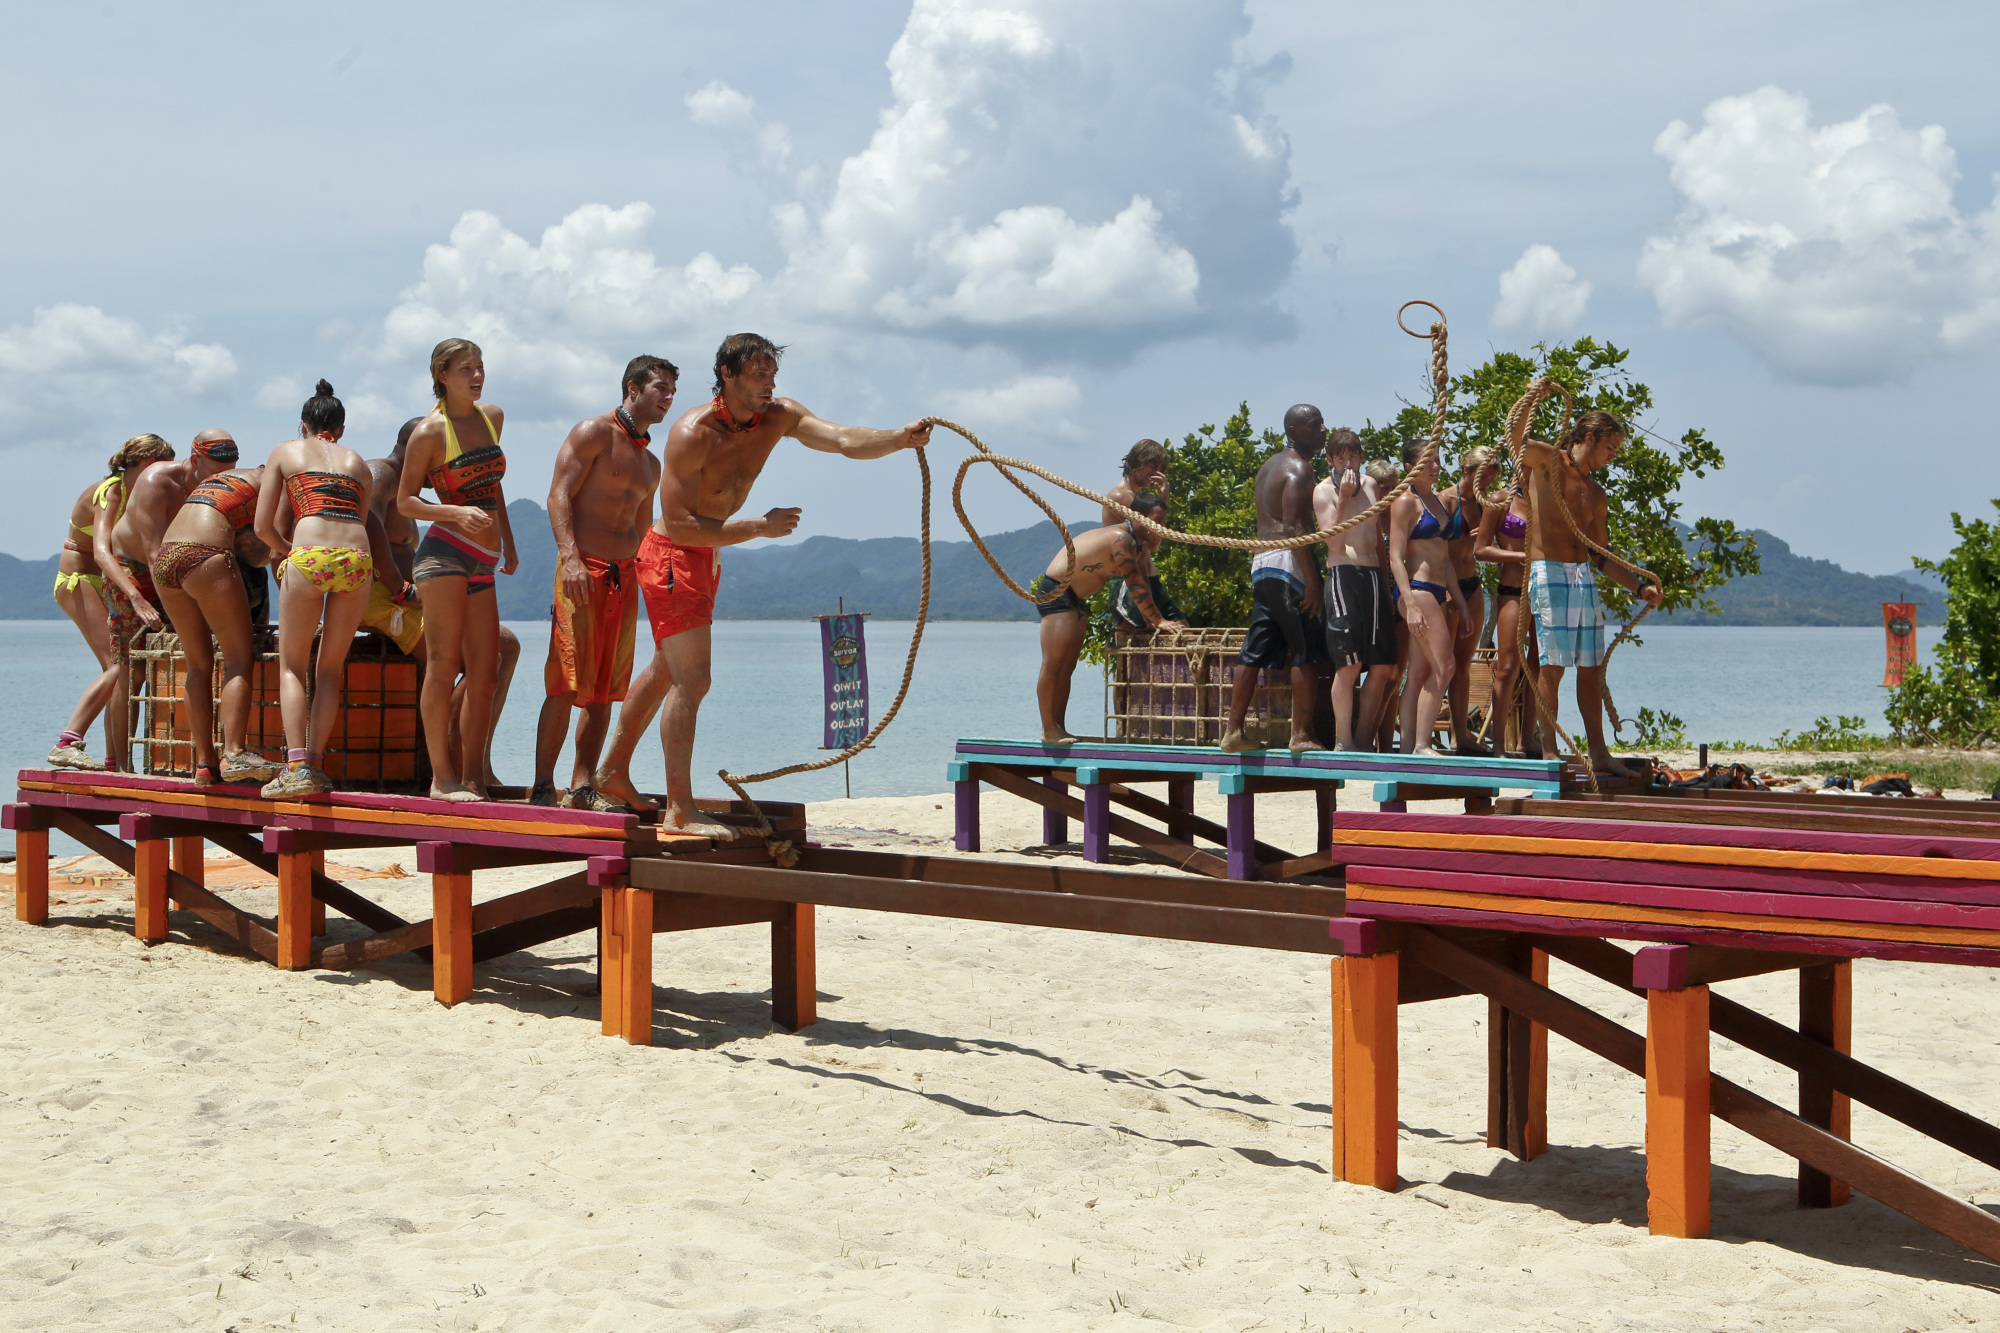 Competing at the immunity challenge on